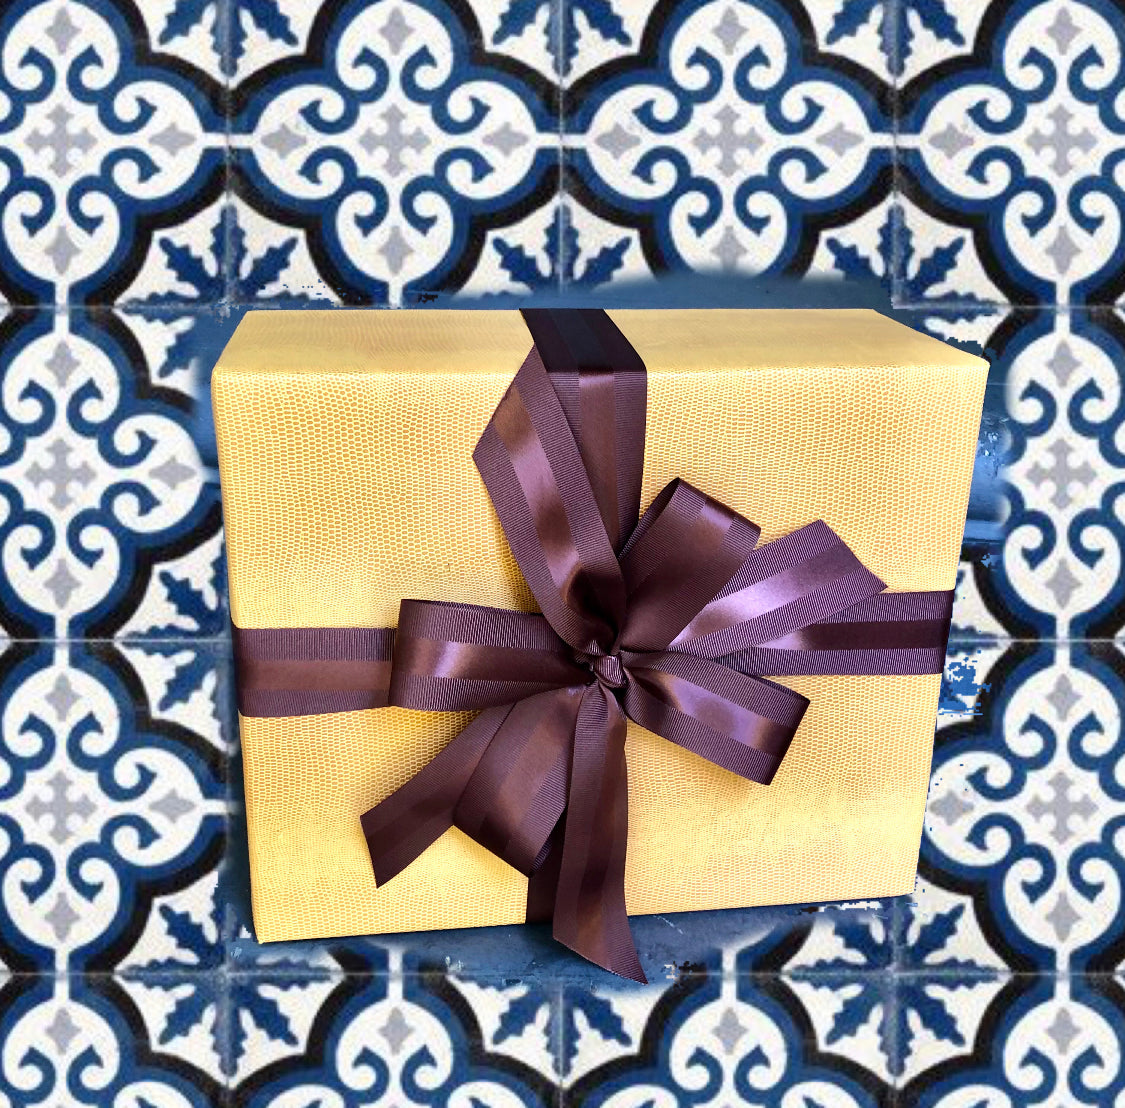 Urban Vintage LA Brown Grosgrain Ribbon 1.5 Inch with Satin Strip